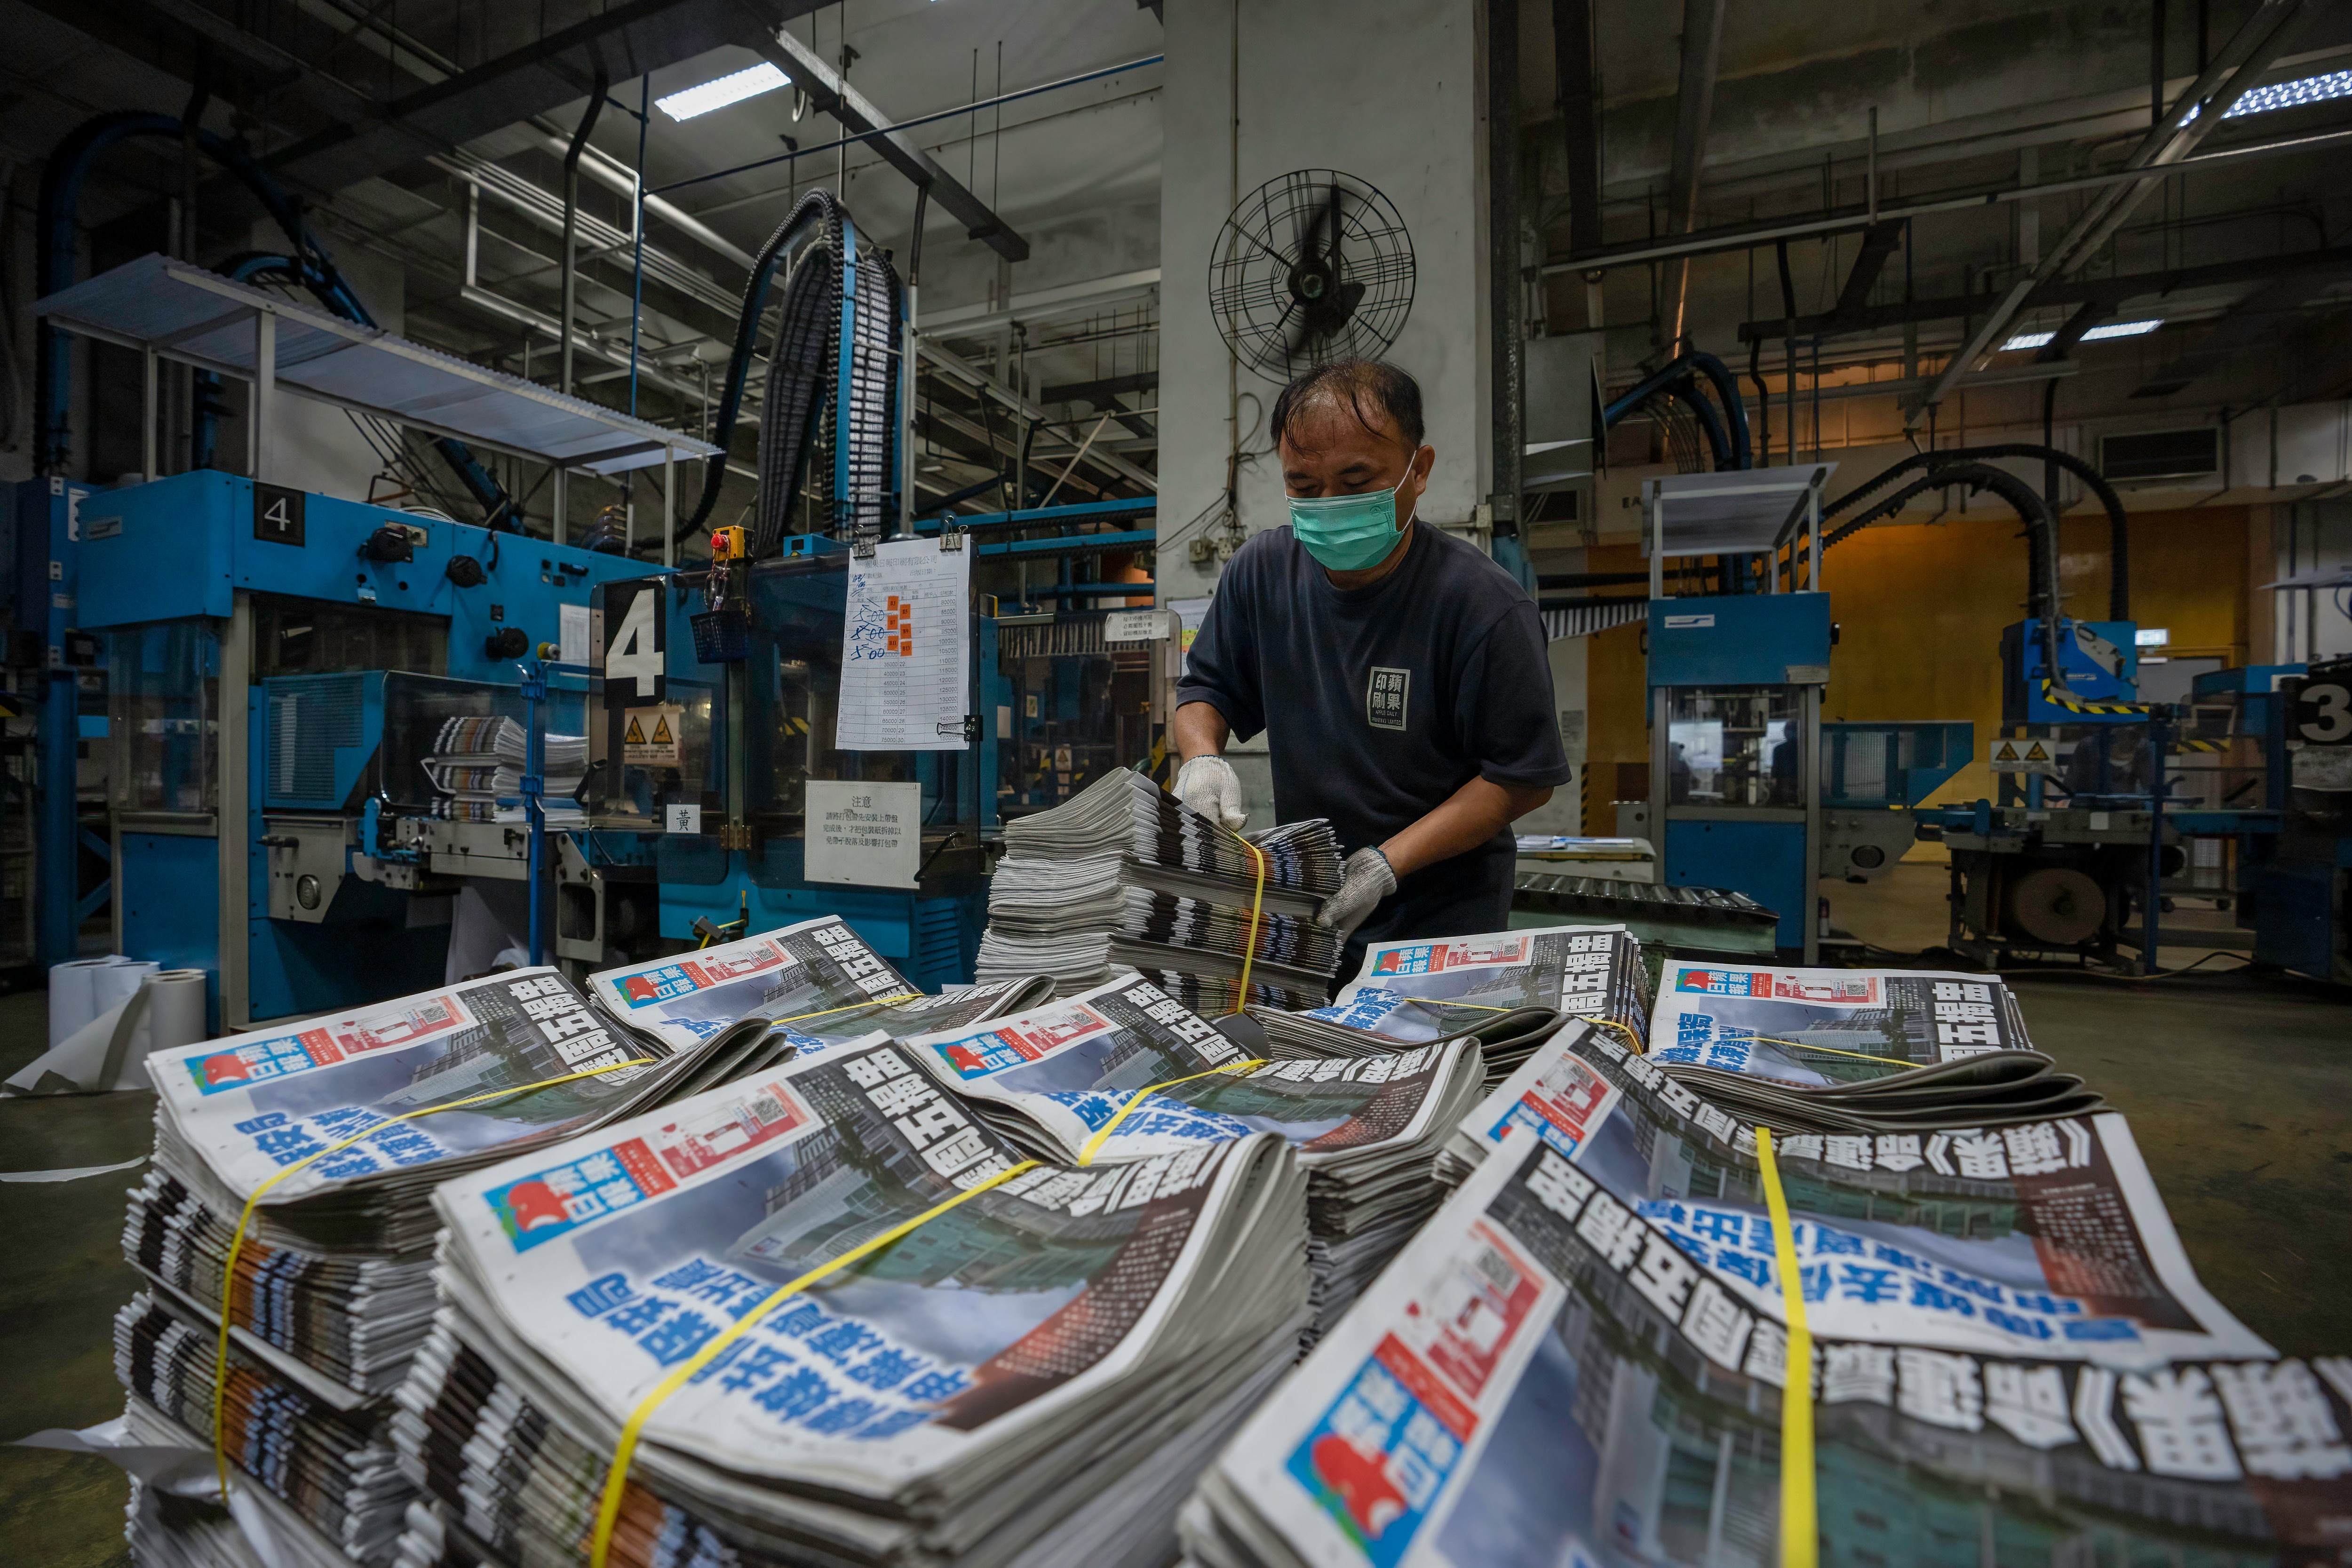 An employee stacks freshly printed newspapers onto a pallet in the Apple Daily printing facility in Hong Kong.